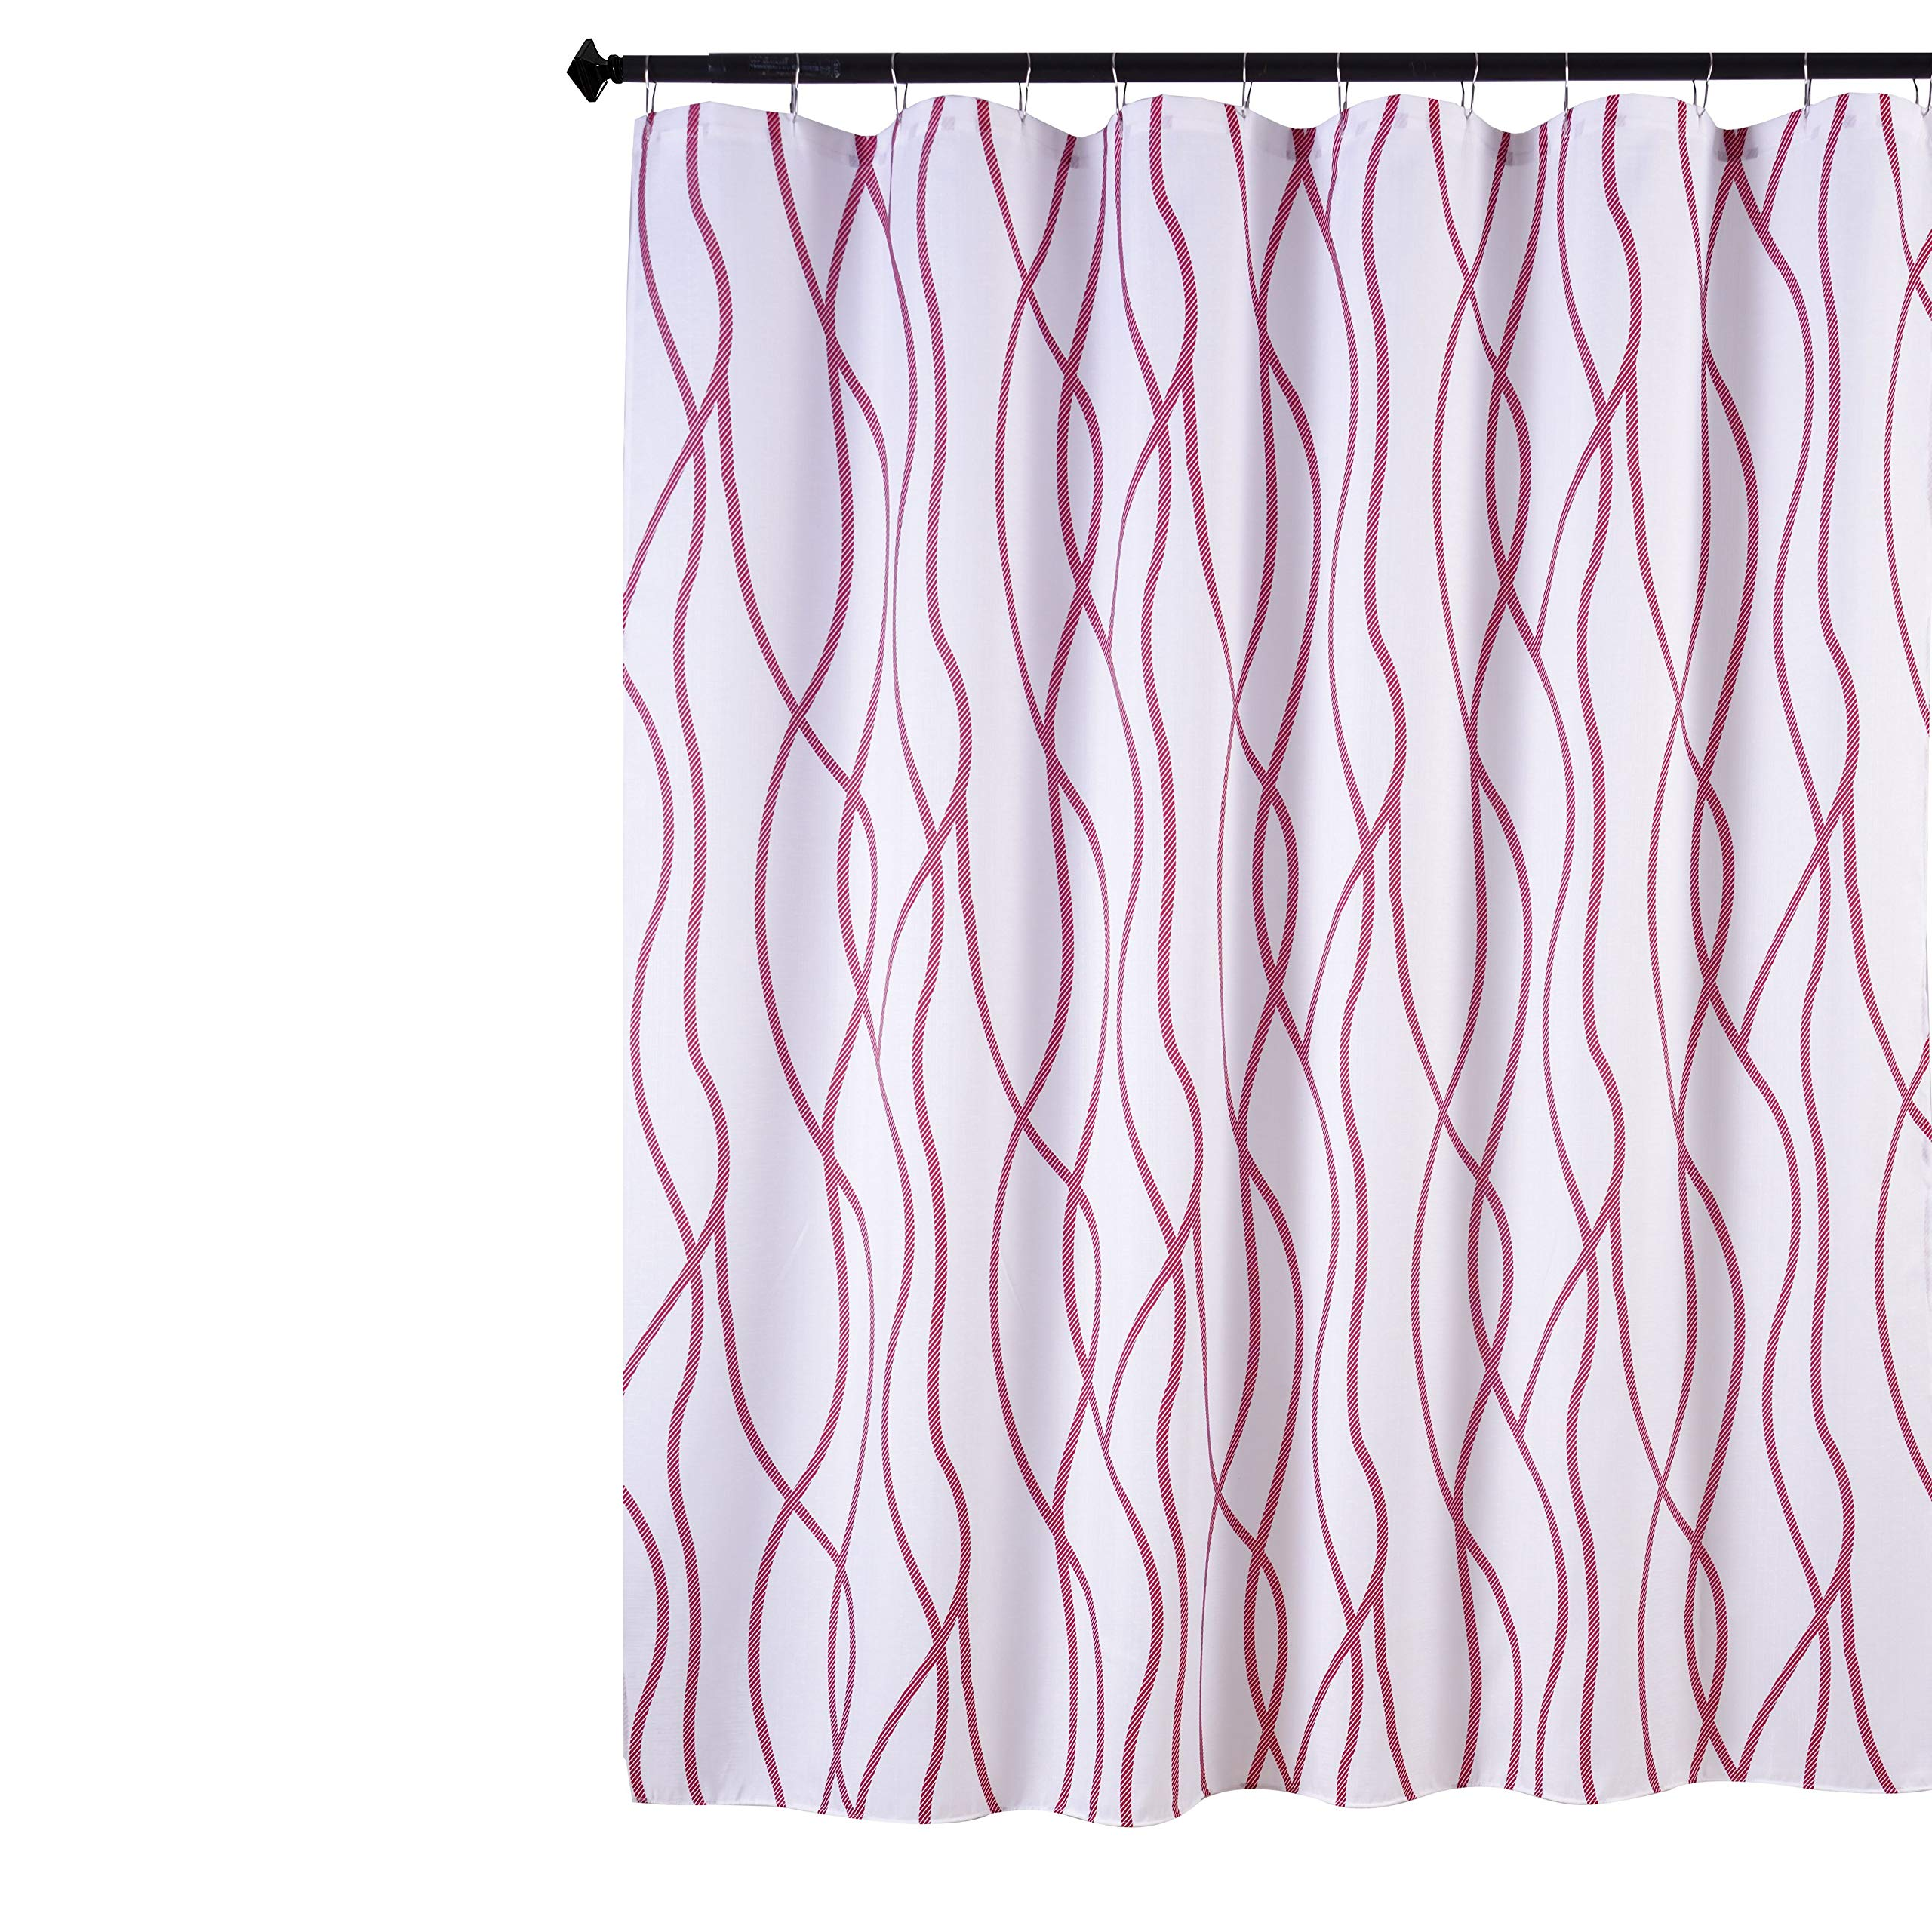 Biscaynebay Textured Fabric Shower Curtain Printed Dancing Bathroom Curtains Burgundy 72 by 72 Inches